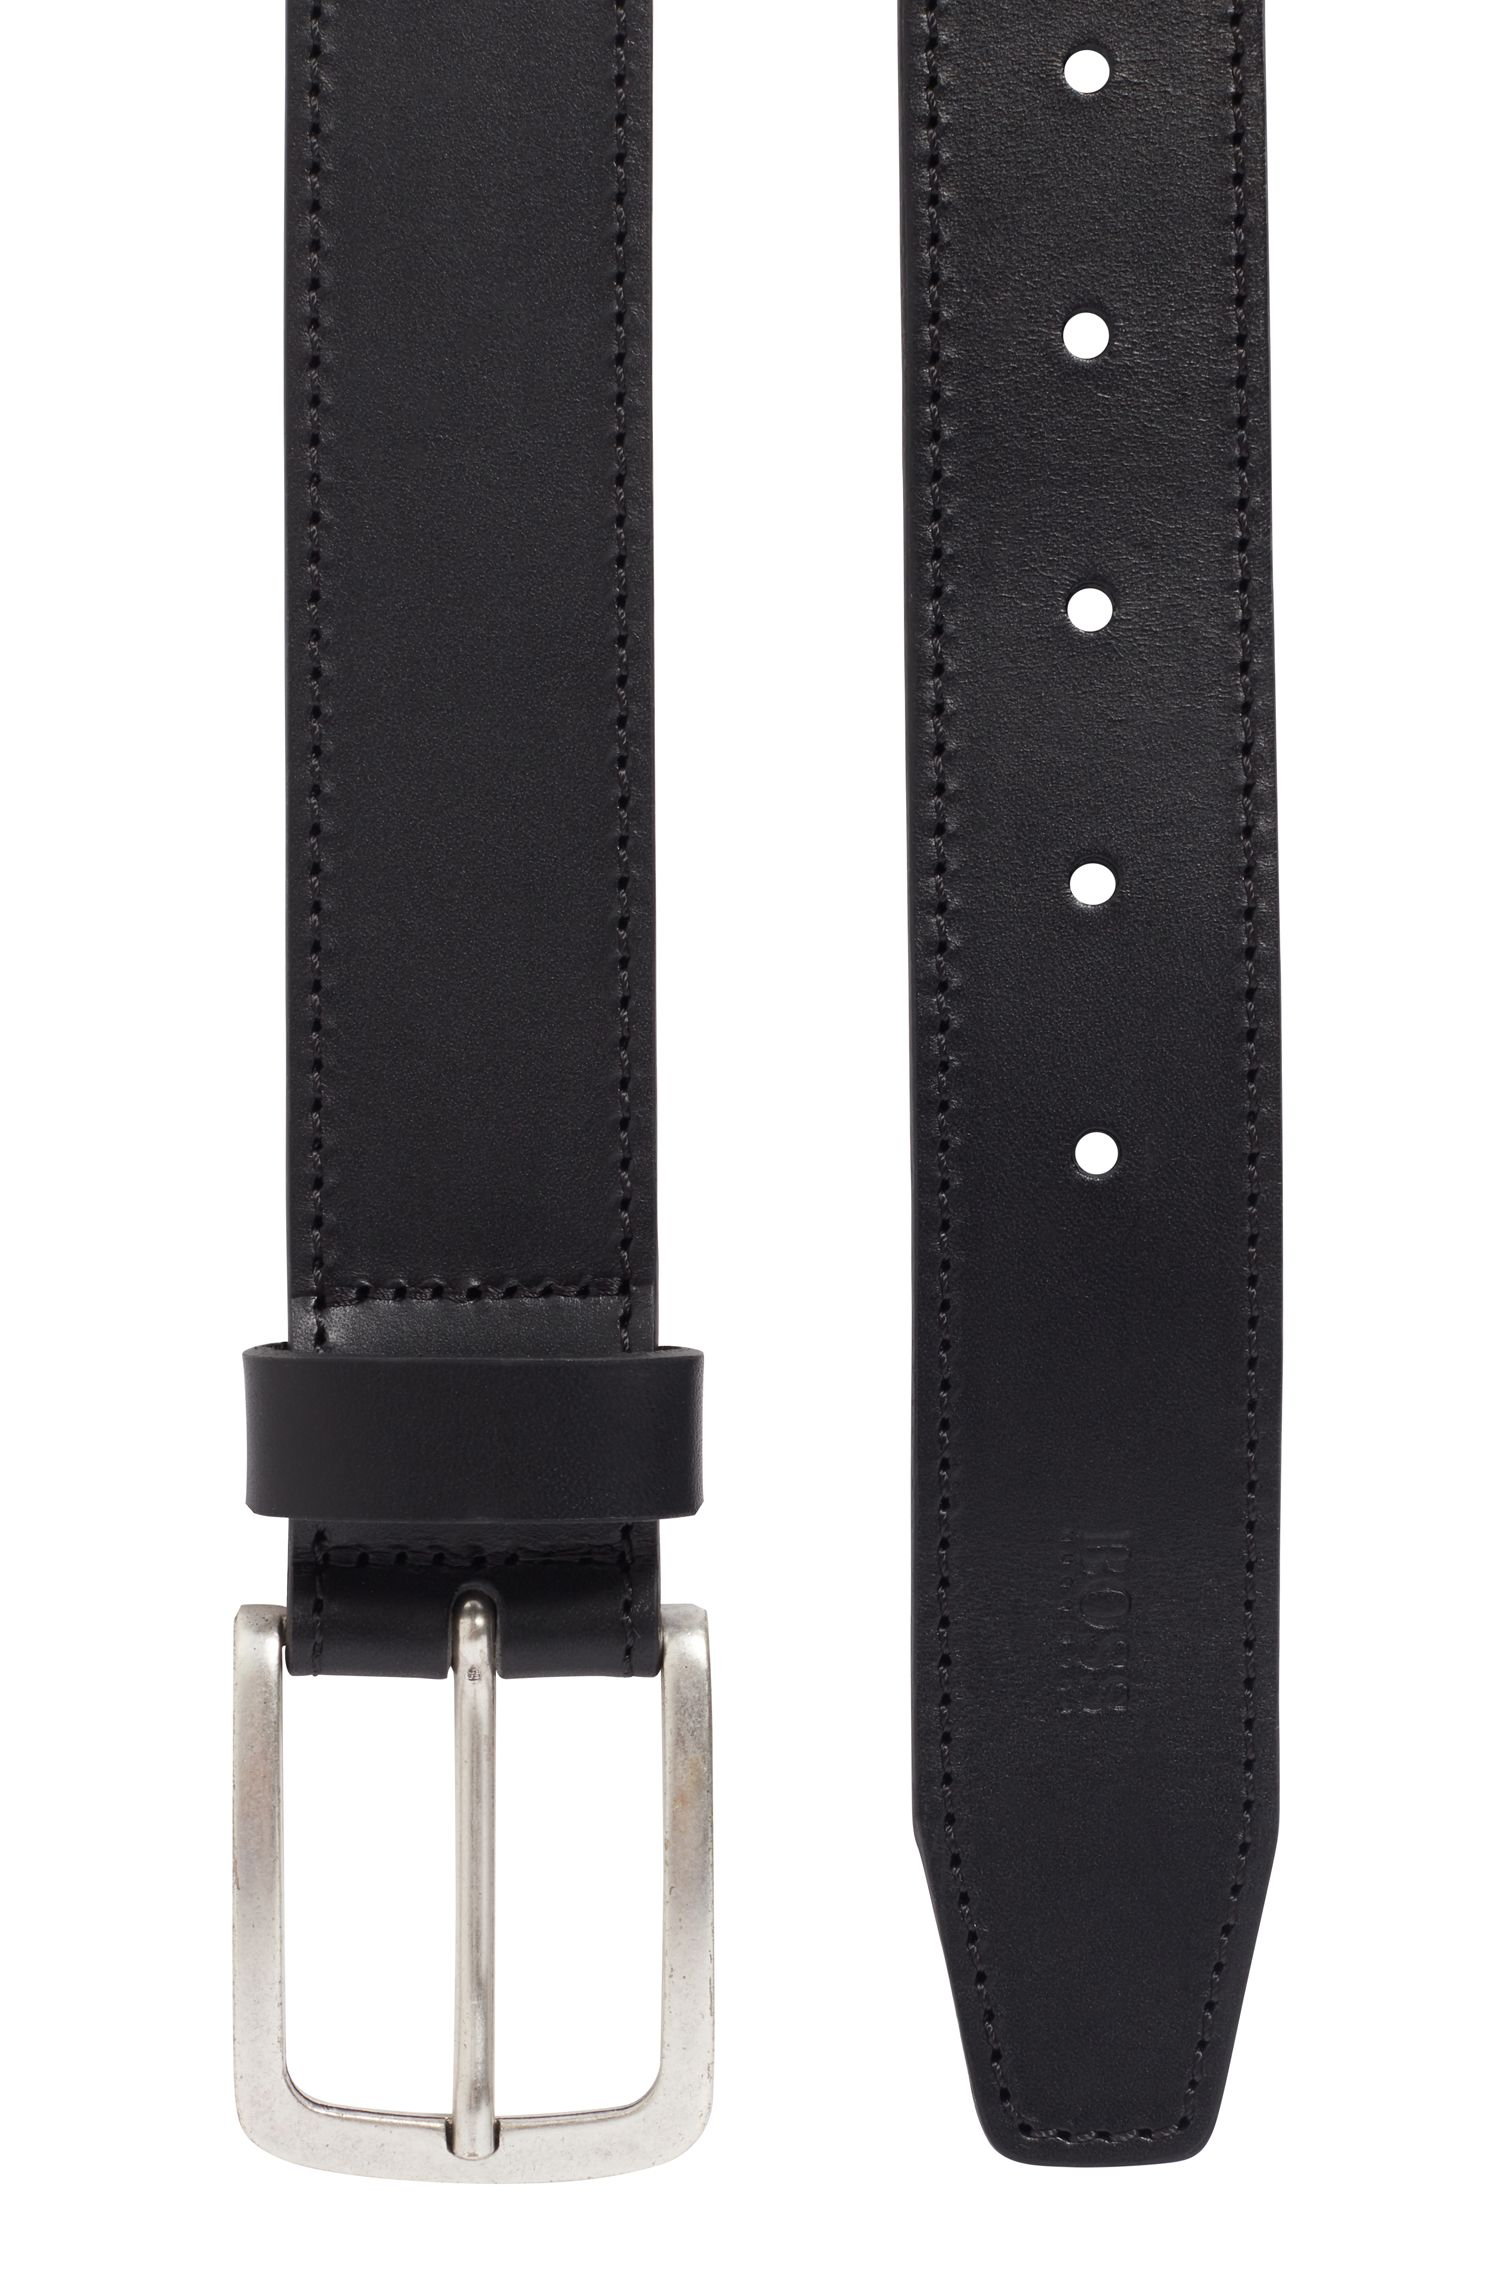 Pin-buckle belt in cuoio leather with seasonal stitching, Black